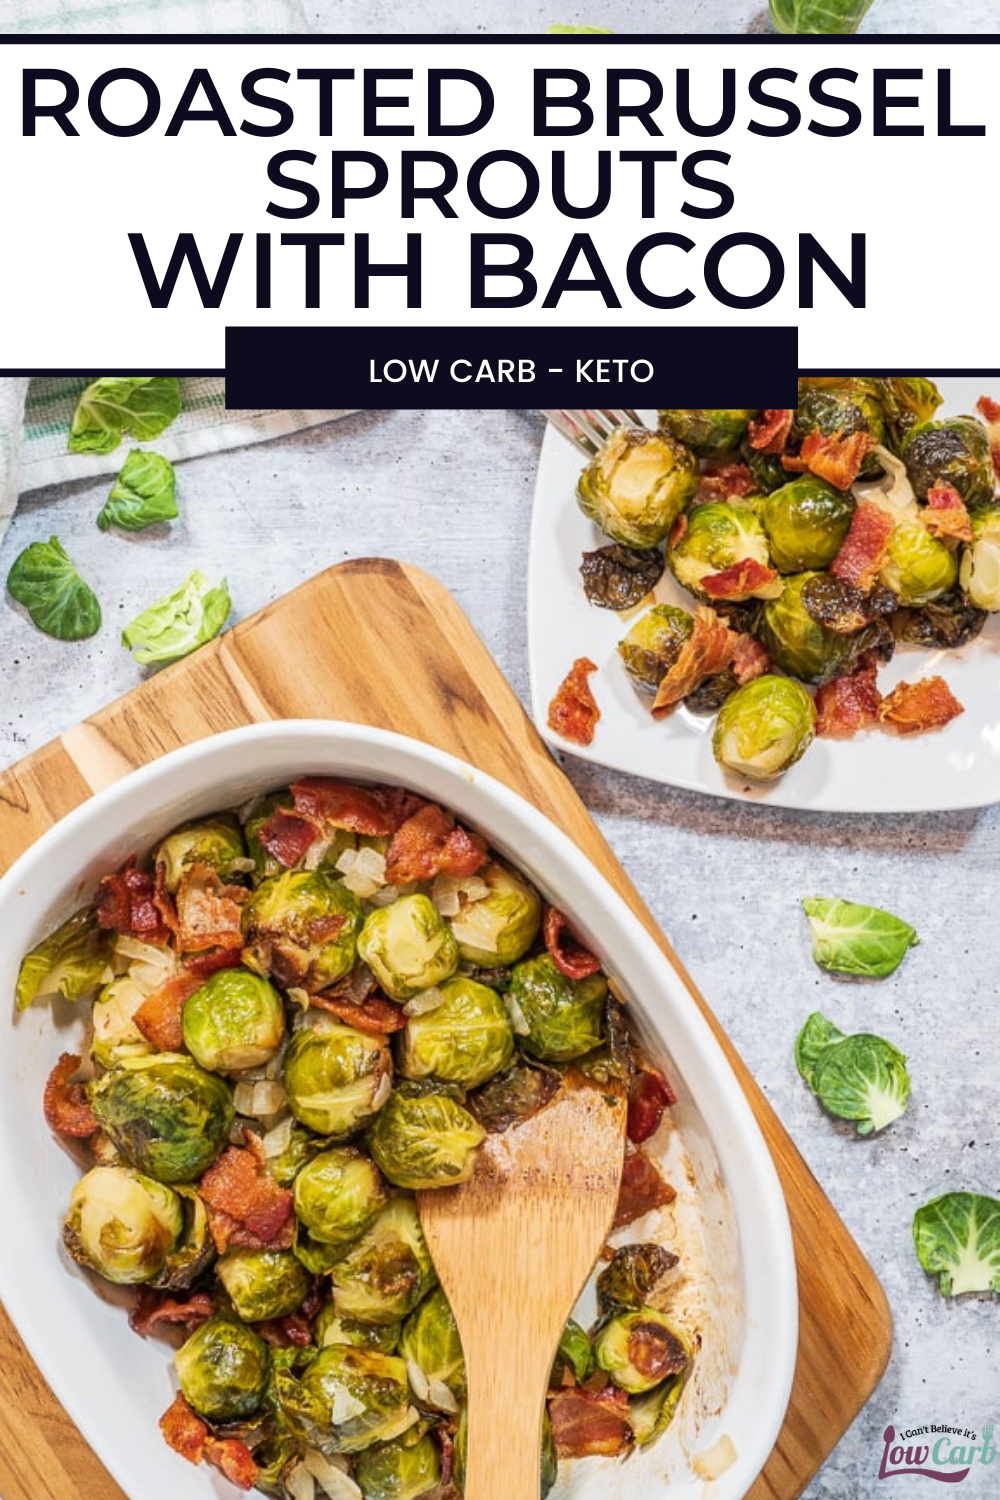 Roasted Brussel Sprouts With Bacon Recipe Low Carb And Keto Friendly Recipe Roasted Brussel Sprouts With Bacon Recipe Bacon Brussel Sprouts Bacon Recipes Low Carb